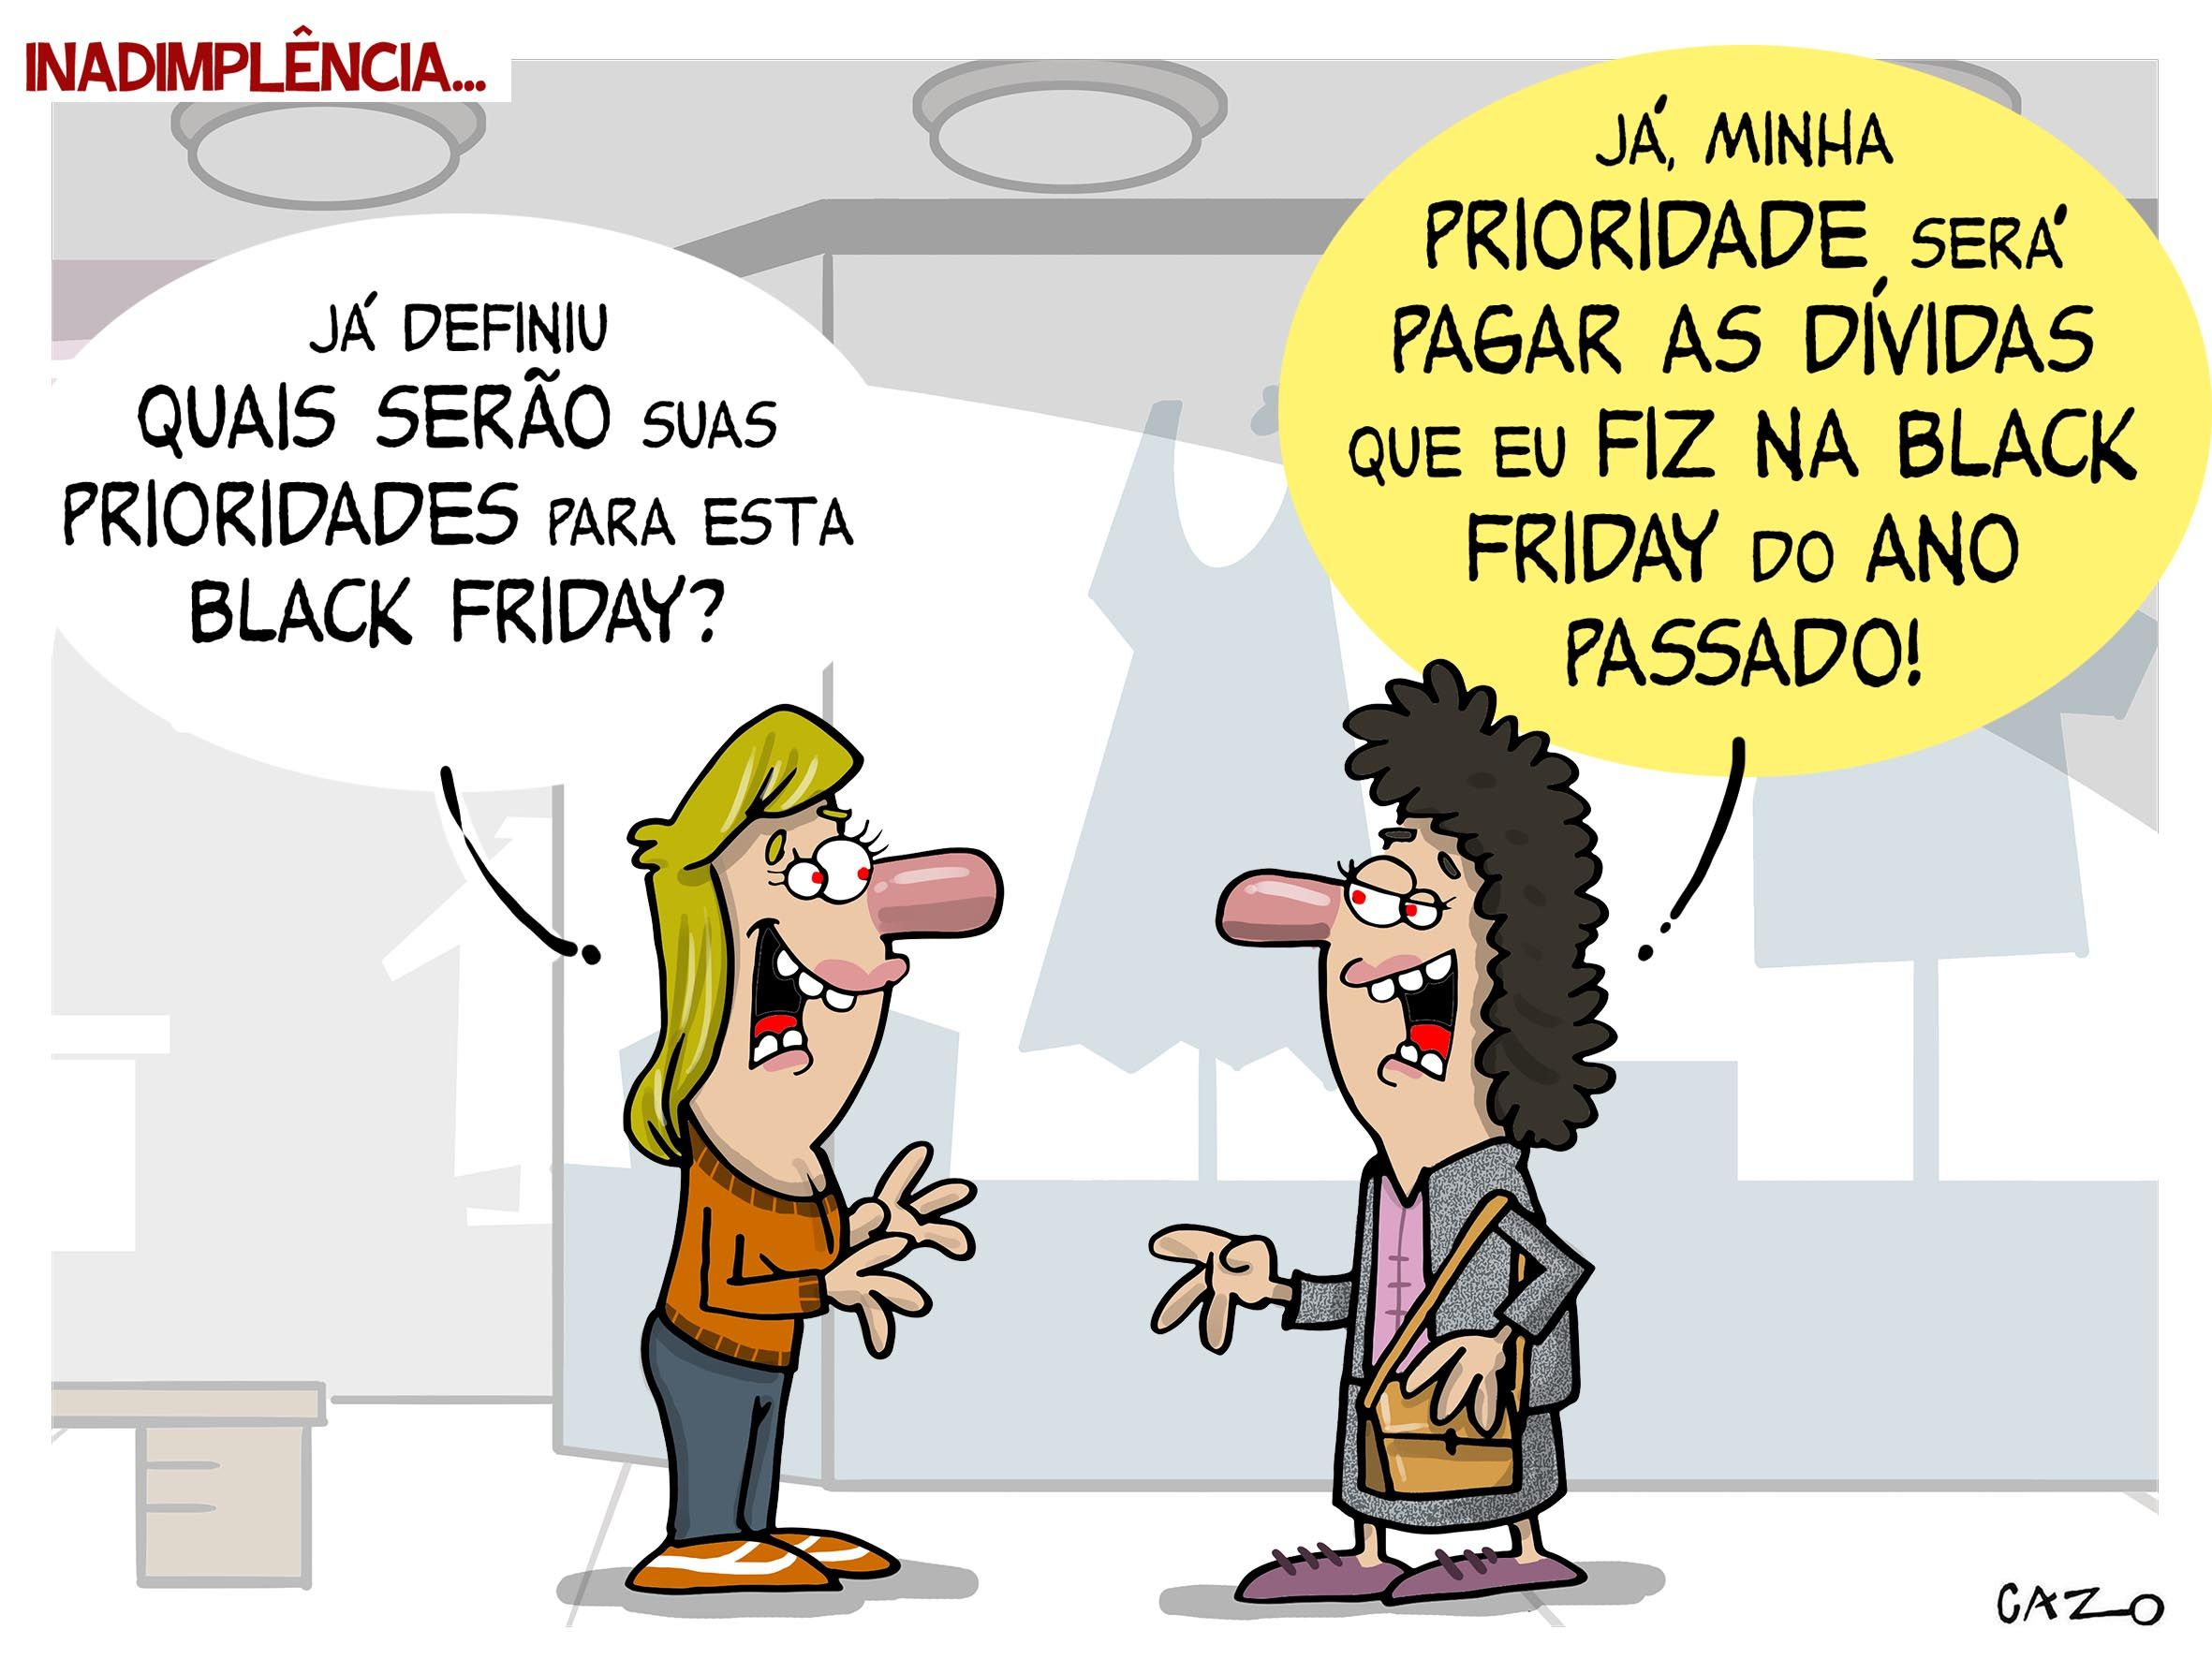 As dívidas da Black Friday